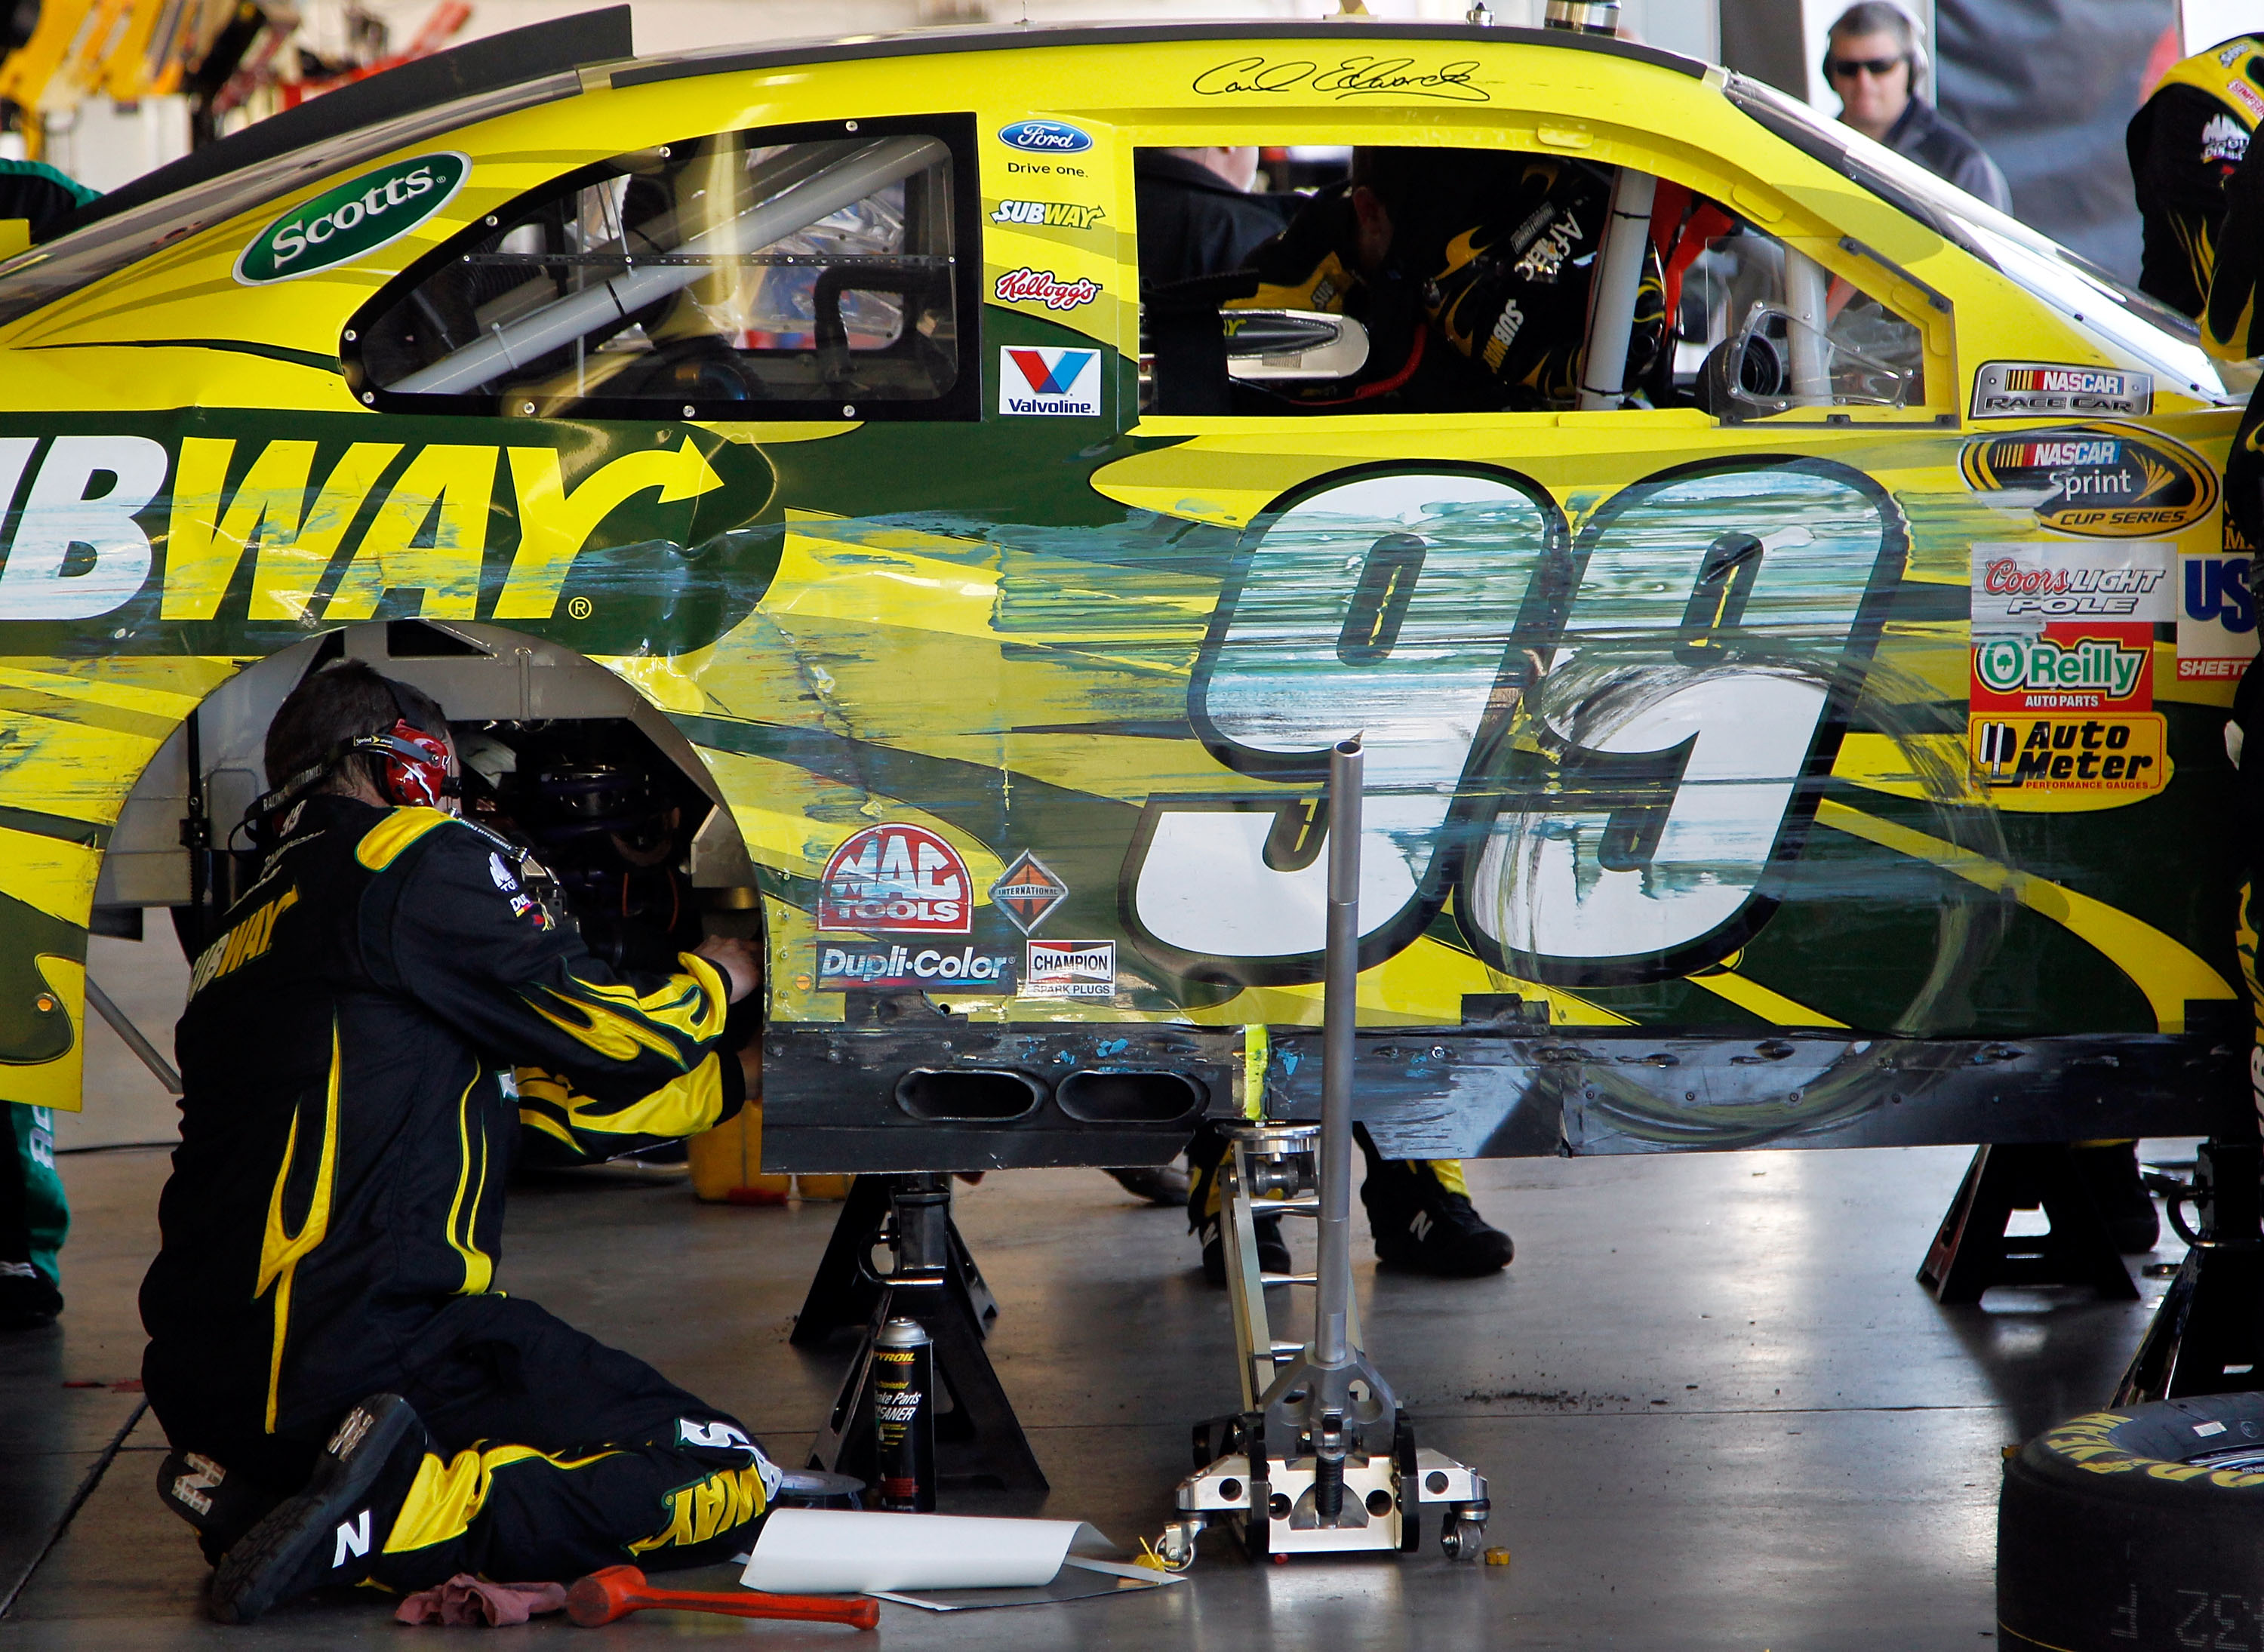 AVONDALE, AZ - FEBRUARY 27:  Crew members work on the car of Carl Edwards, driver of the #99 Subway Ford, after crashing during the NASCAR Sprint Cup Series Subway Fresh Fit 500 at Phoenix International Raceway on February 27, 2011 in Avondale, Arizona.